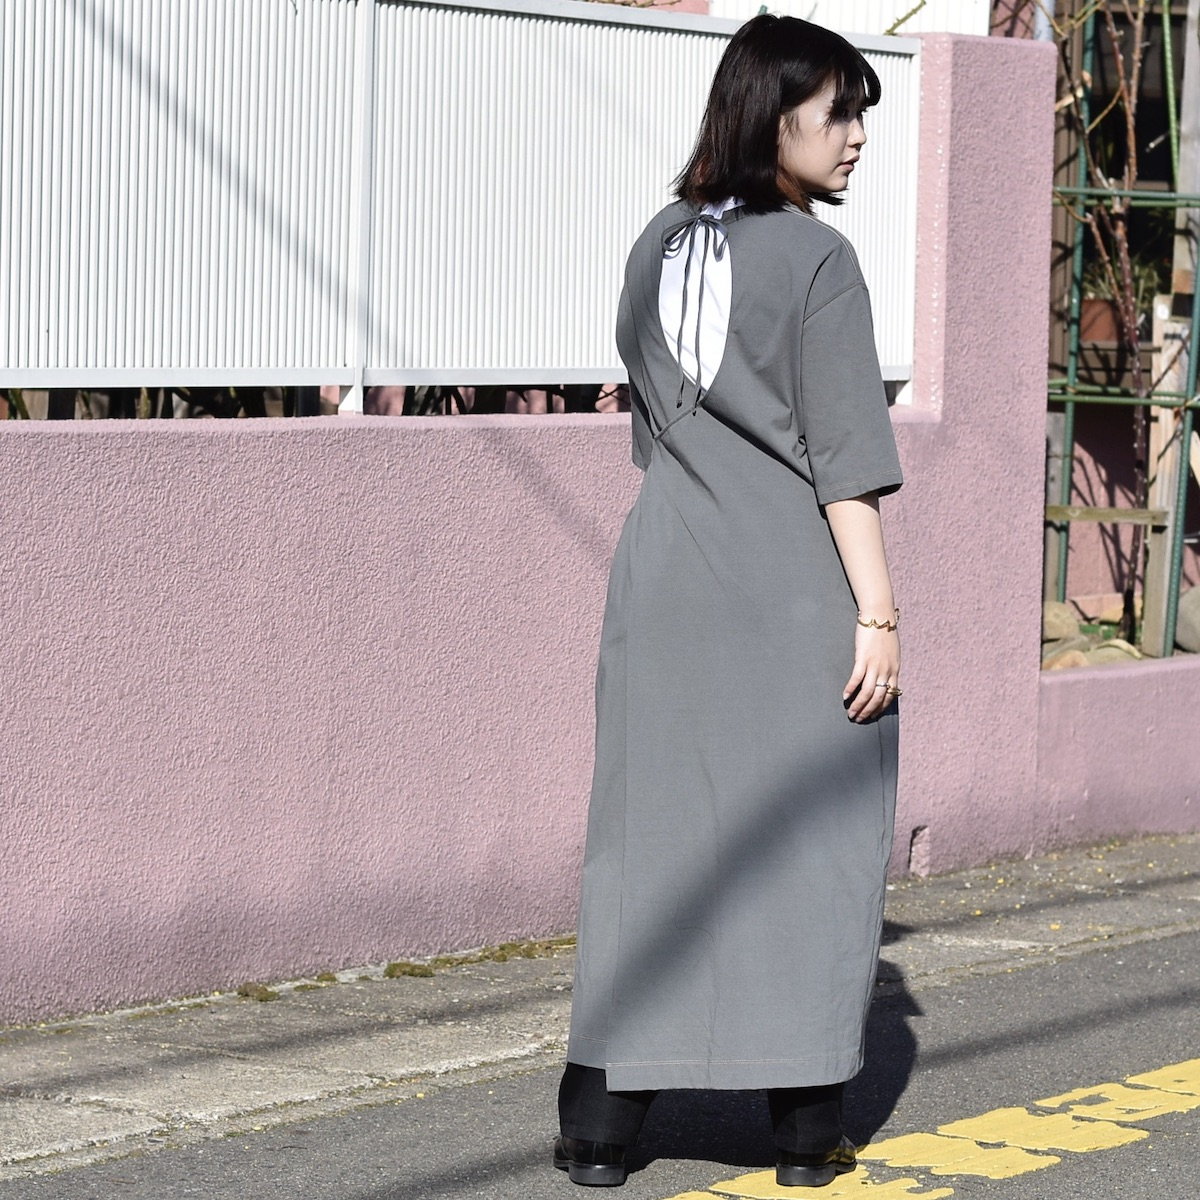 JANESMITH / BACK CACHECOEUR OP (Sage Green) 着用画像②